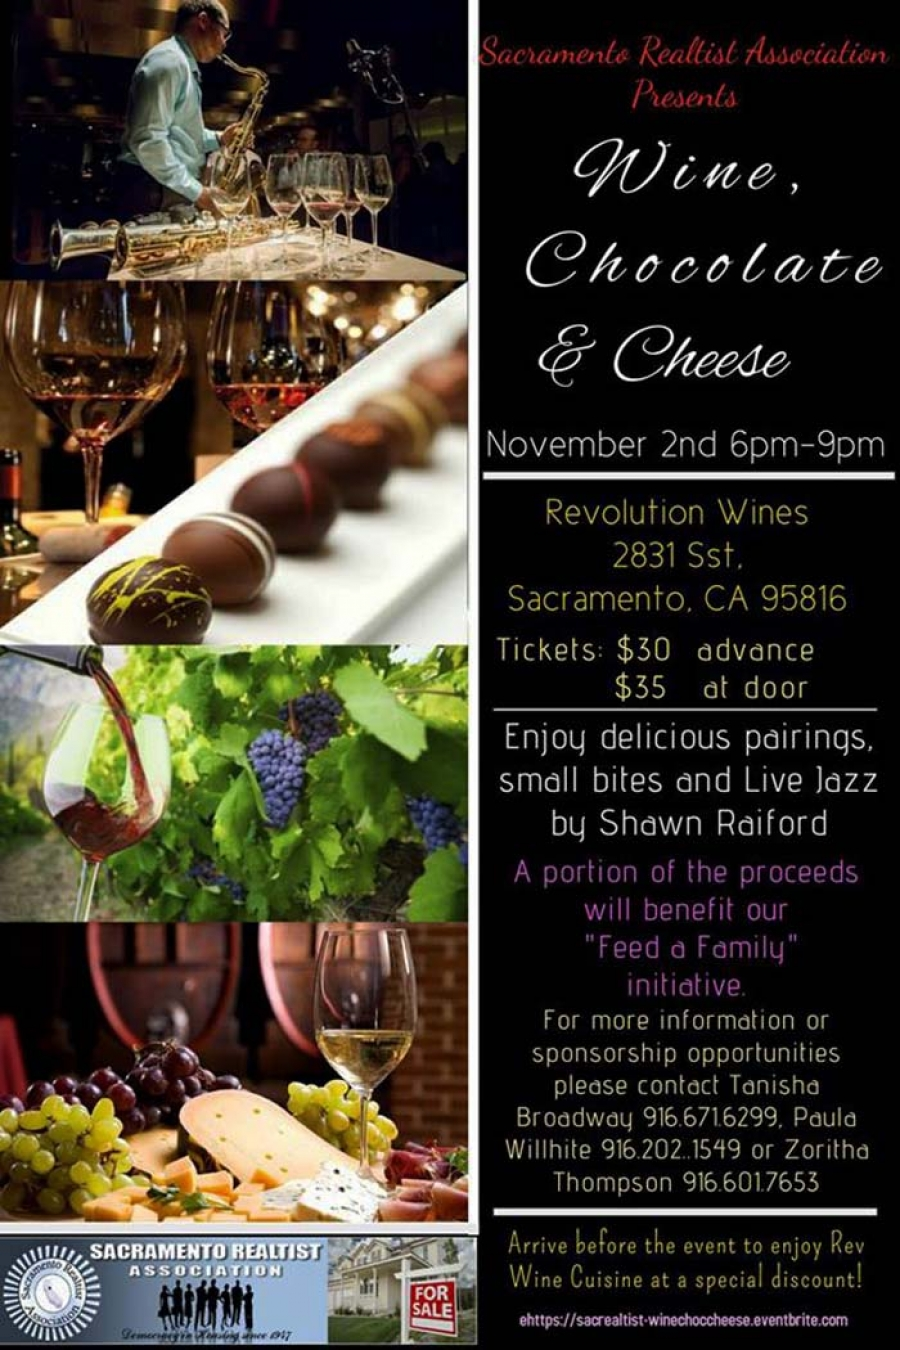 GOT TIX - Wine, Chocolate & Cheese event on Nov 2nd presented by the Sacramento Realtist Association